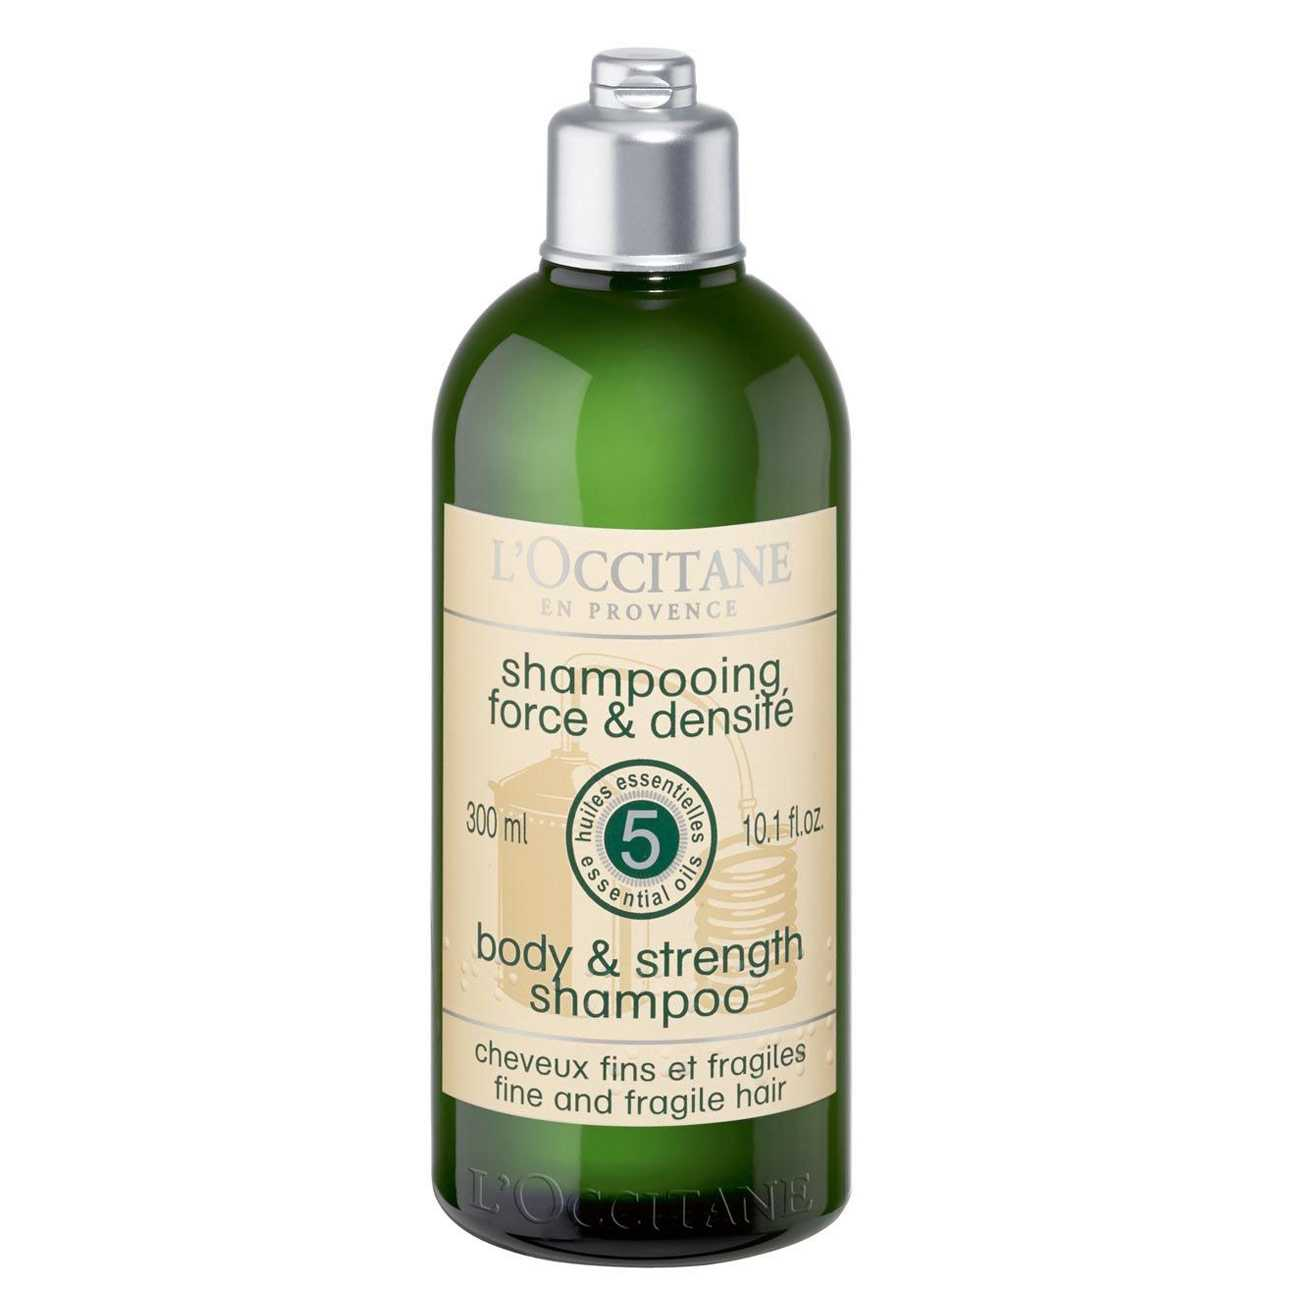 BODY&STRENGTH SHAMPOO 300 ML